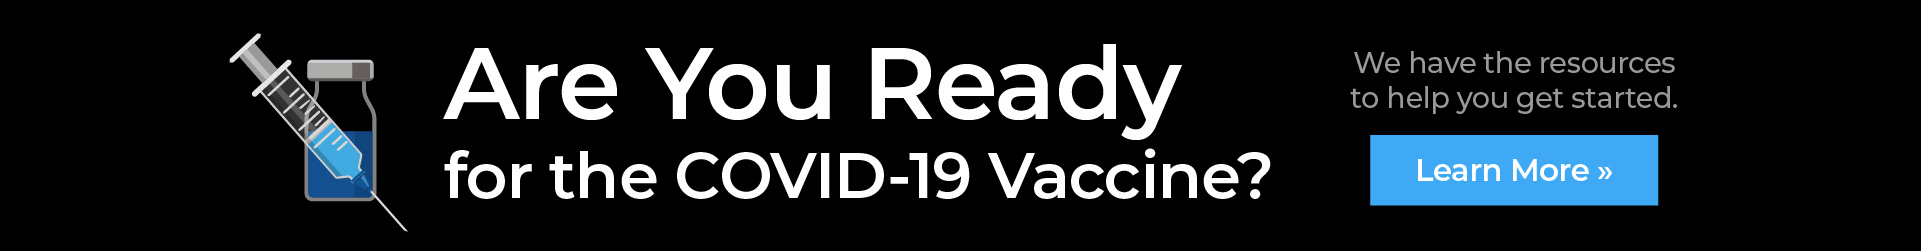 Are you ready for the COVID-19 Vaccine?